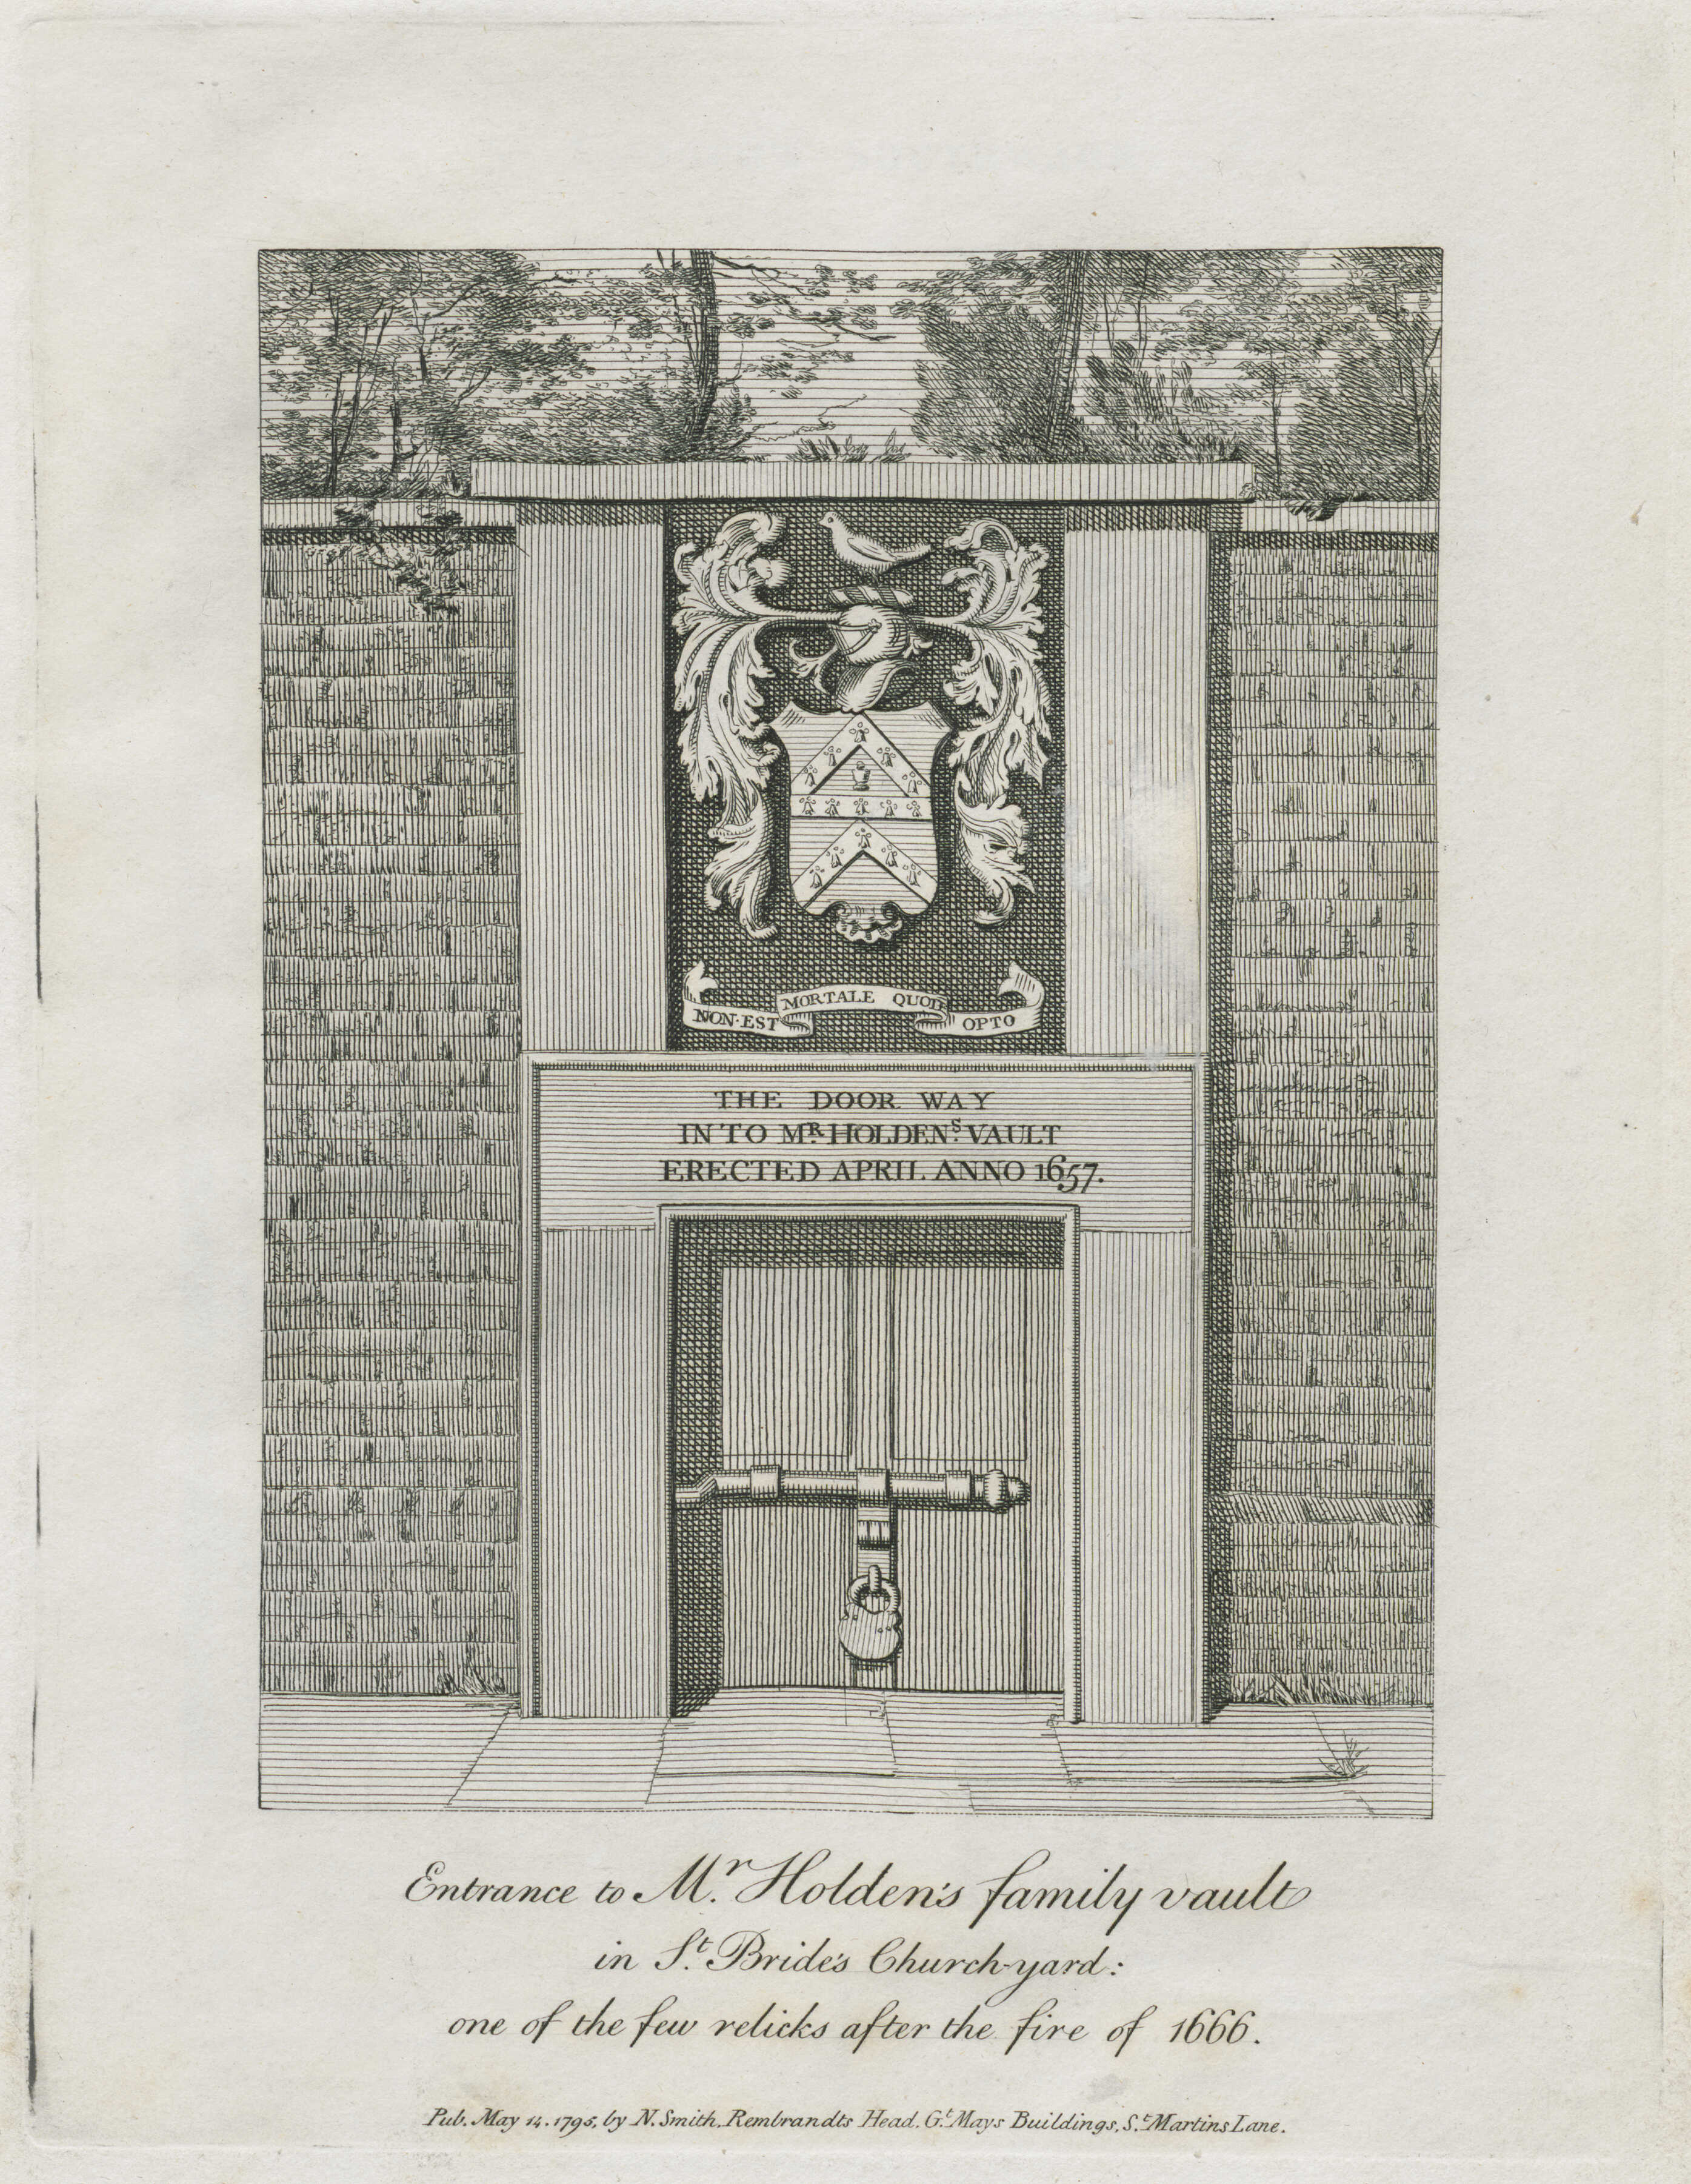 57-entrance-to-mr-holdens-family-vault-in-st-brides-churchyard